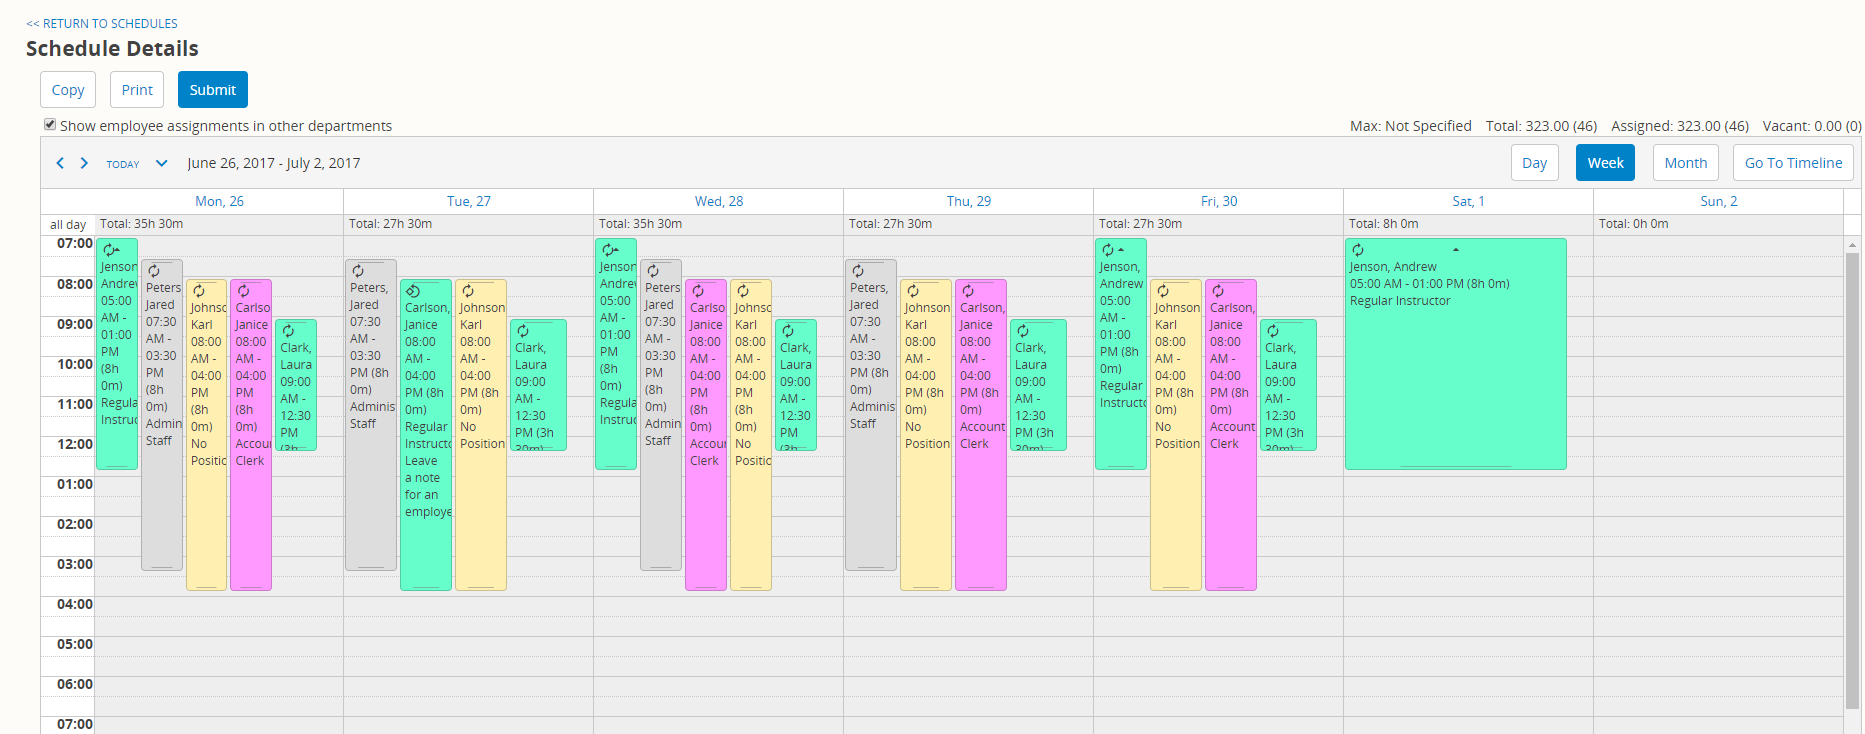 Schedule_View_Ibex_Week.png